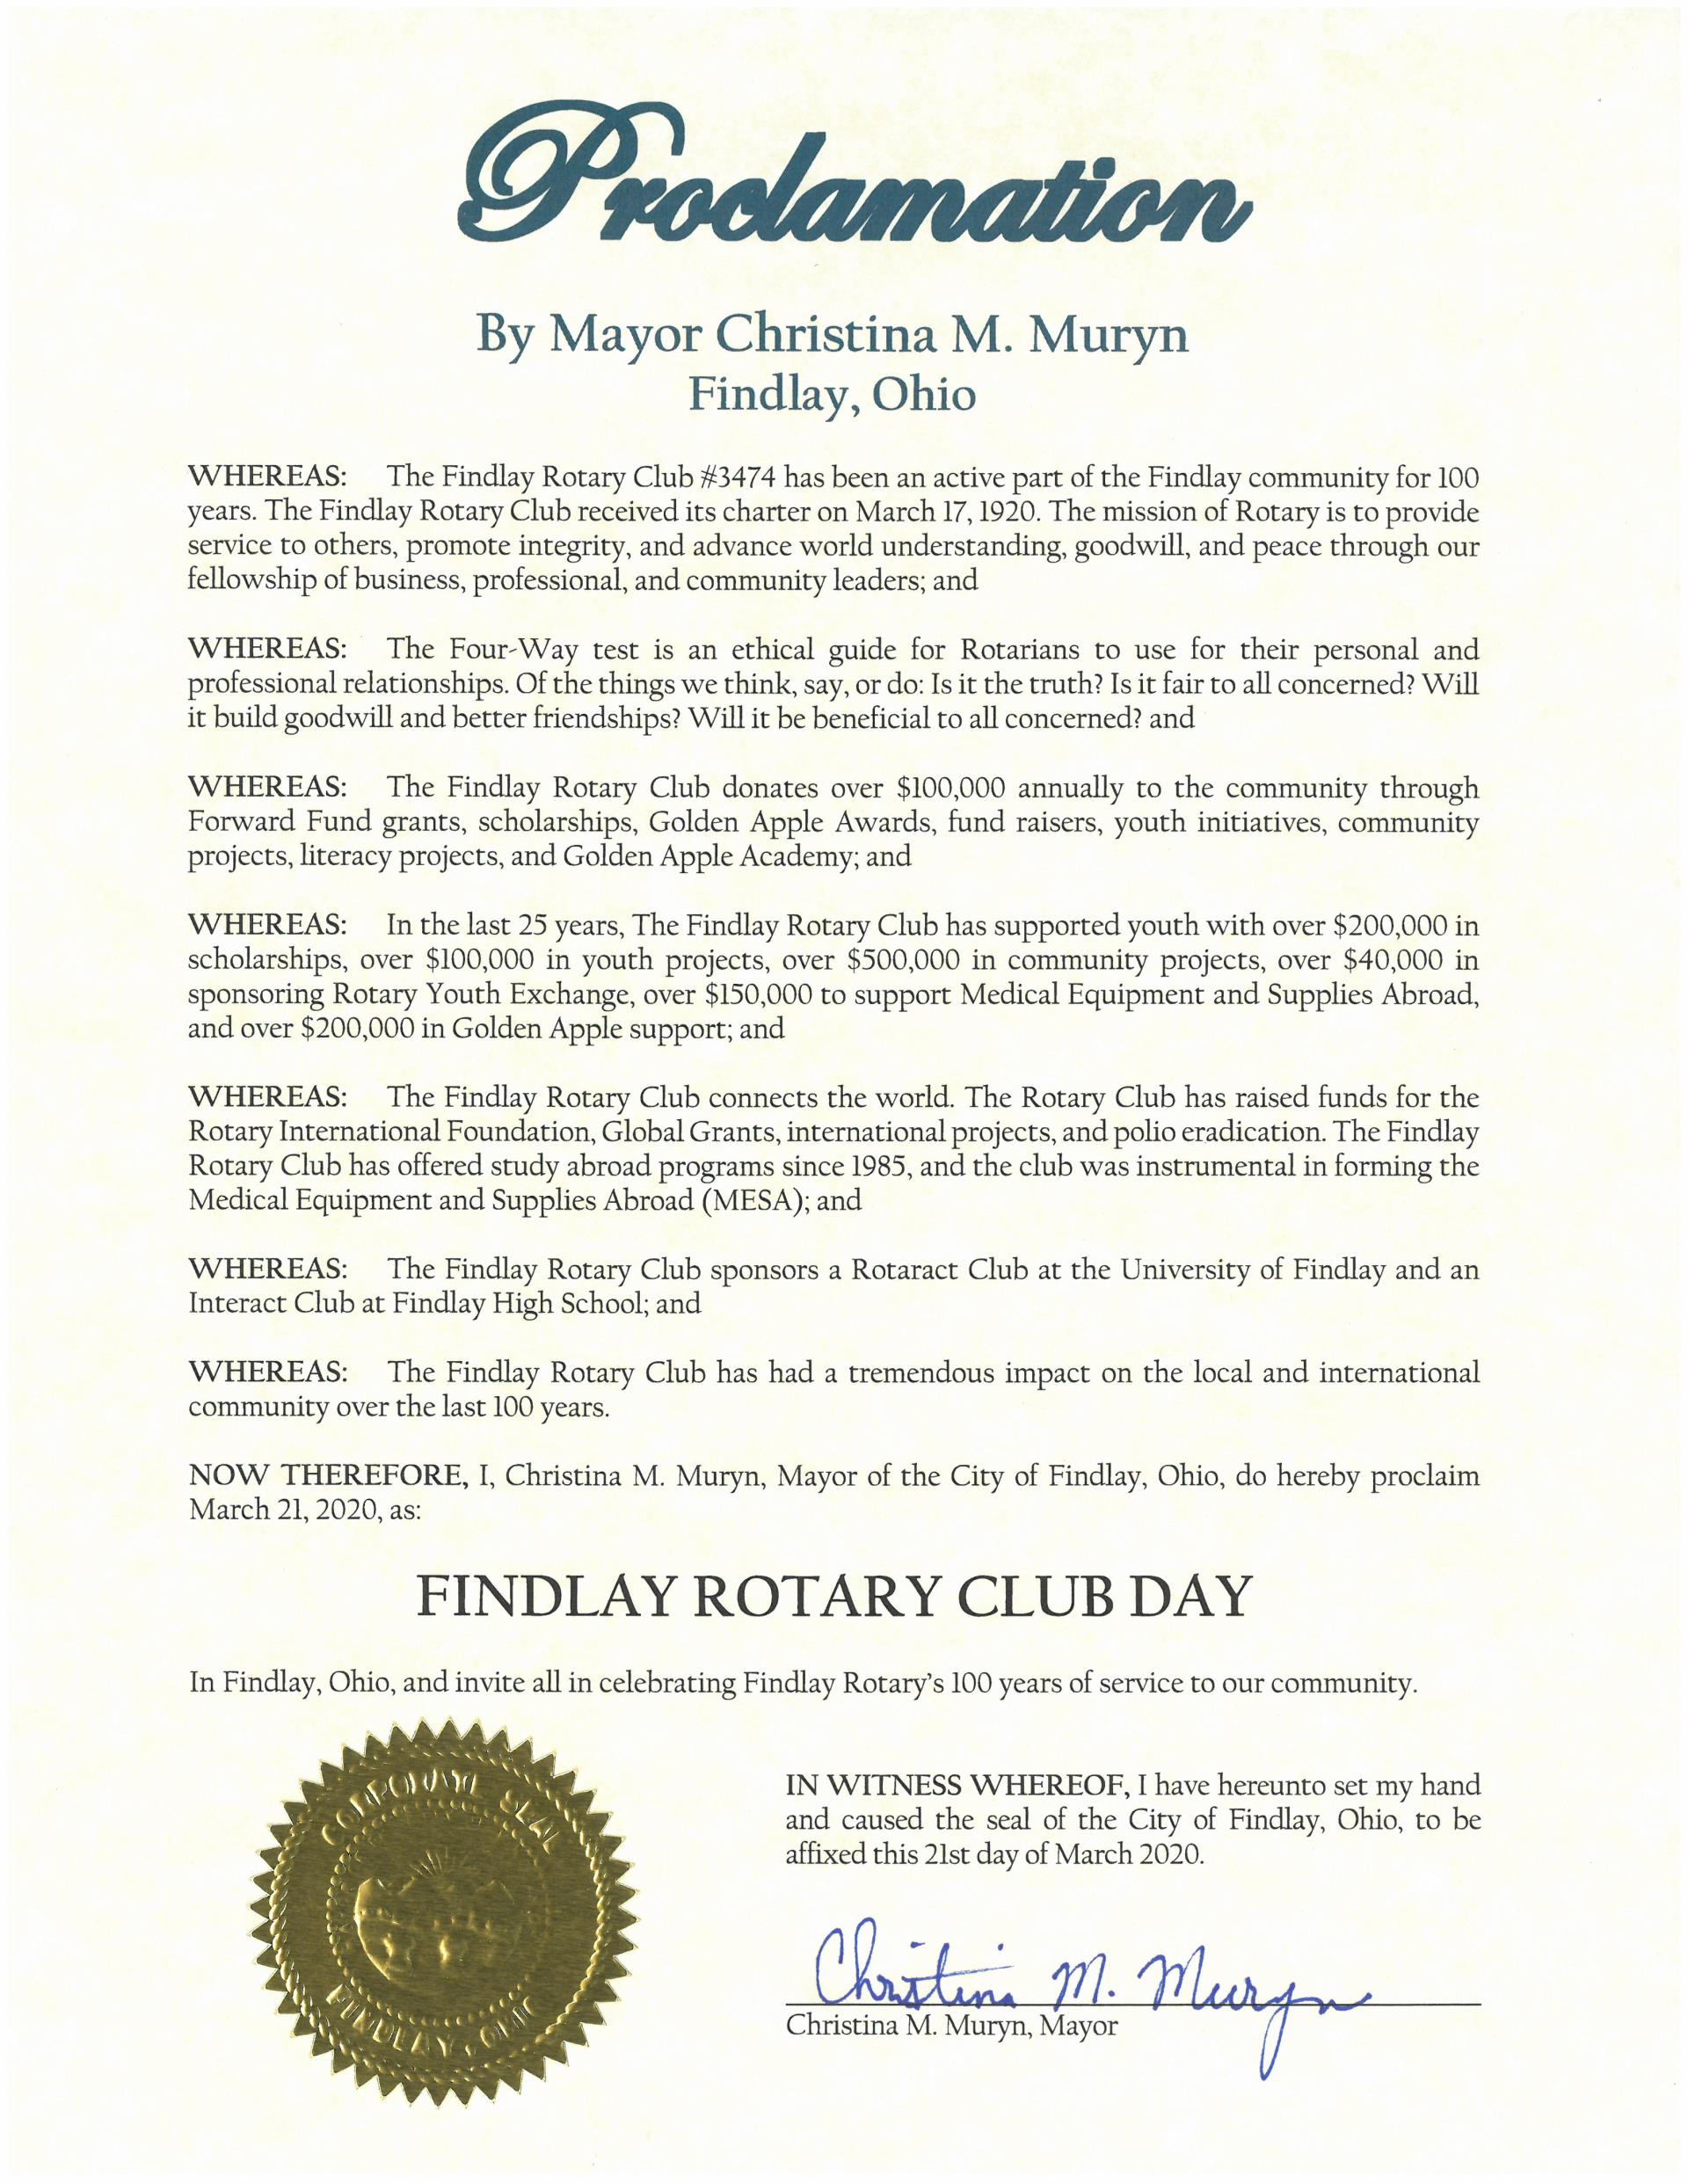 2020.03.21.Findlay Rotary Club Day Proclamation